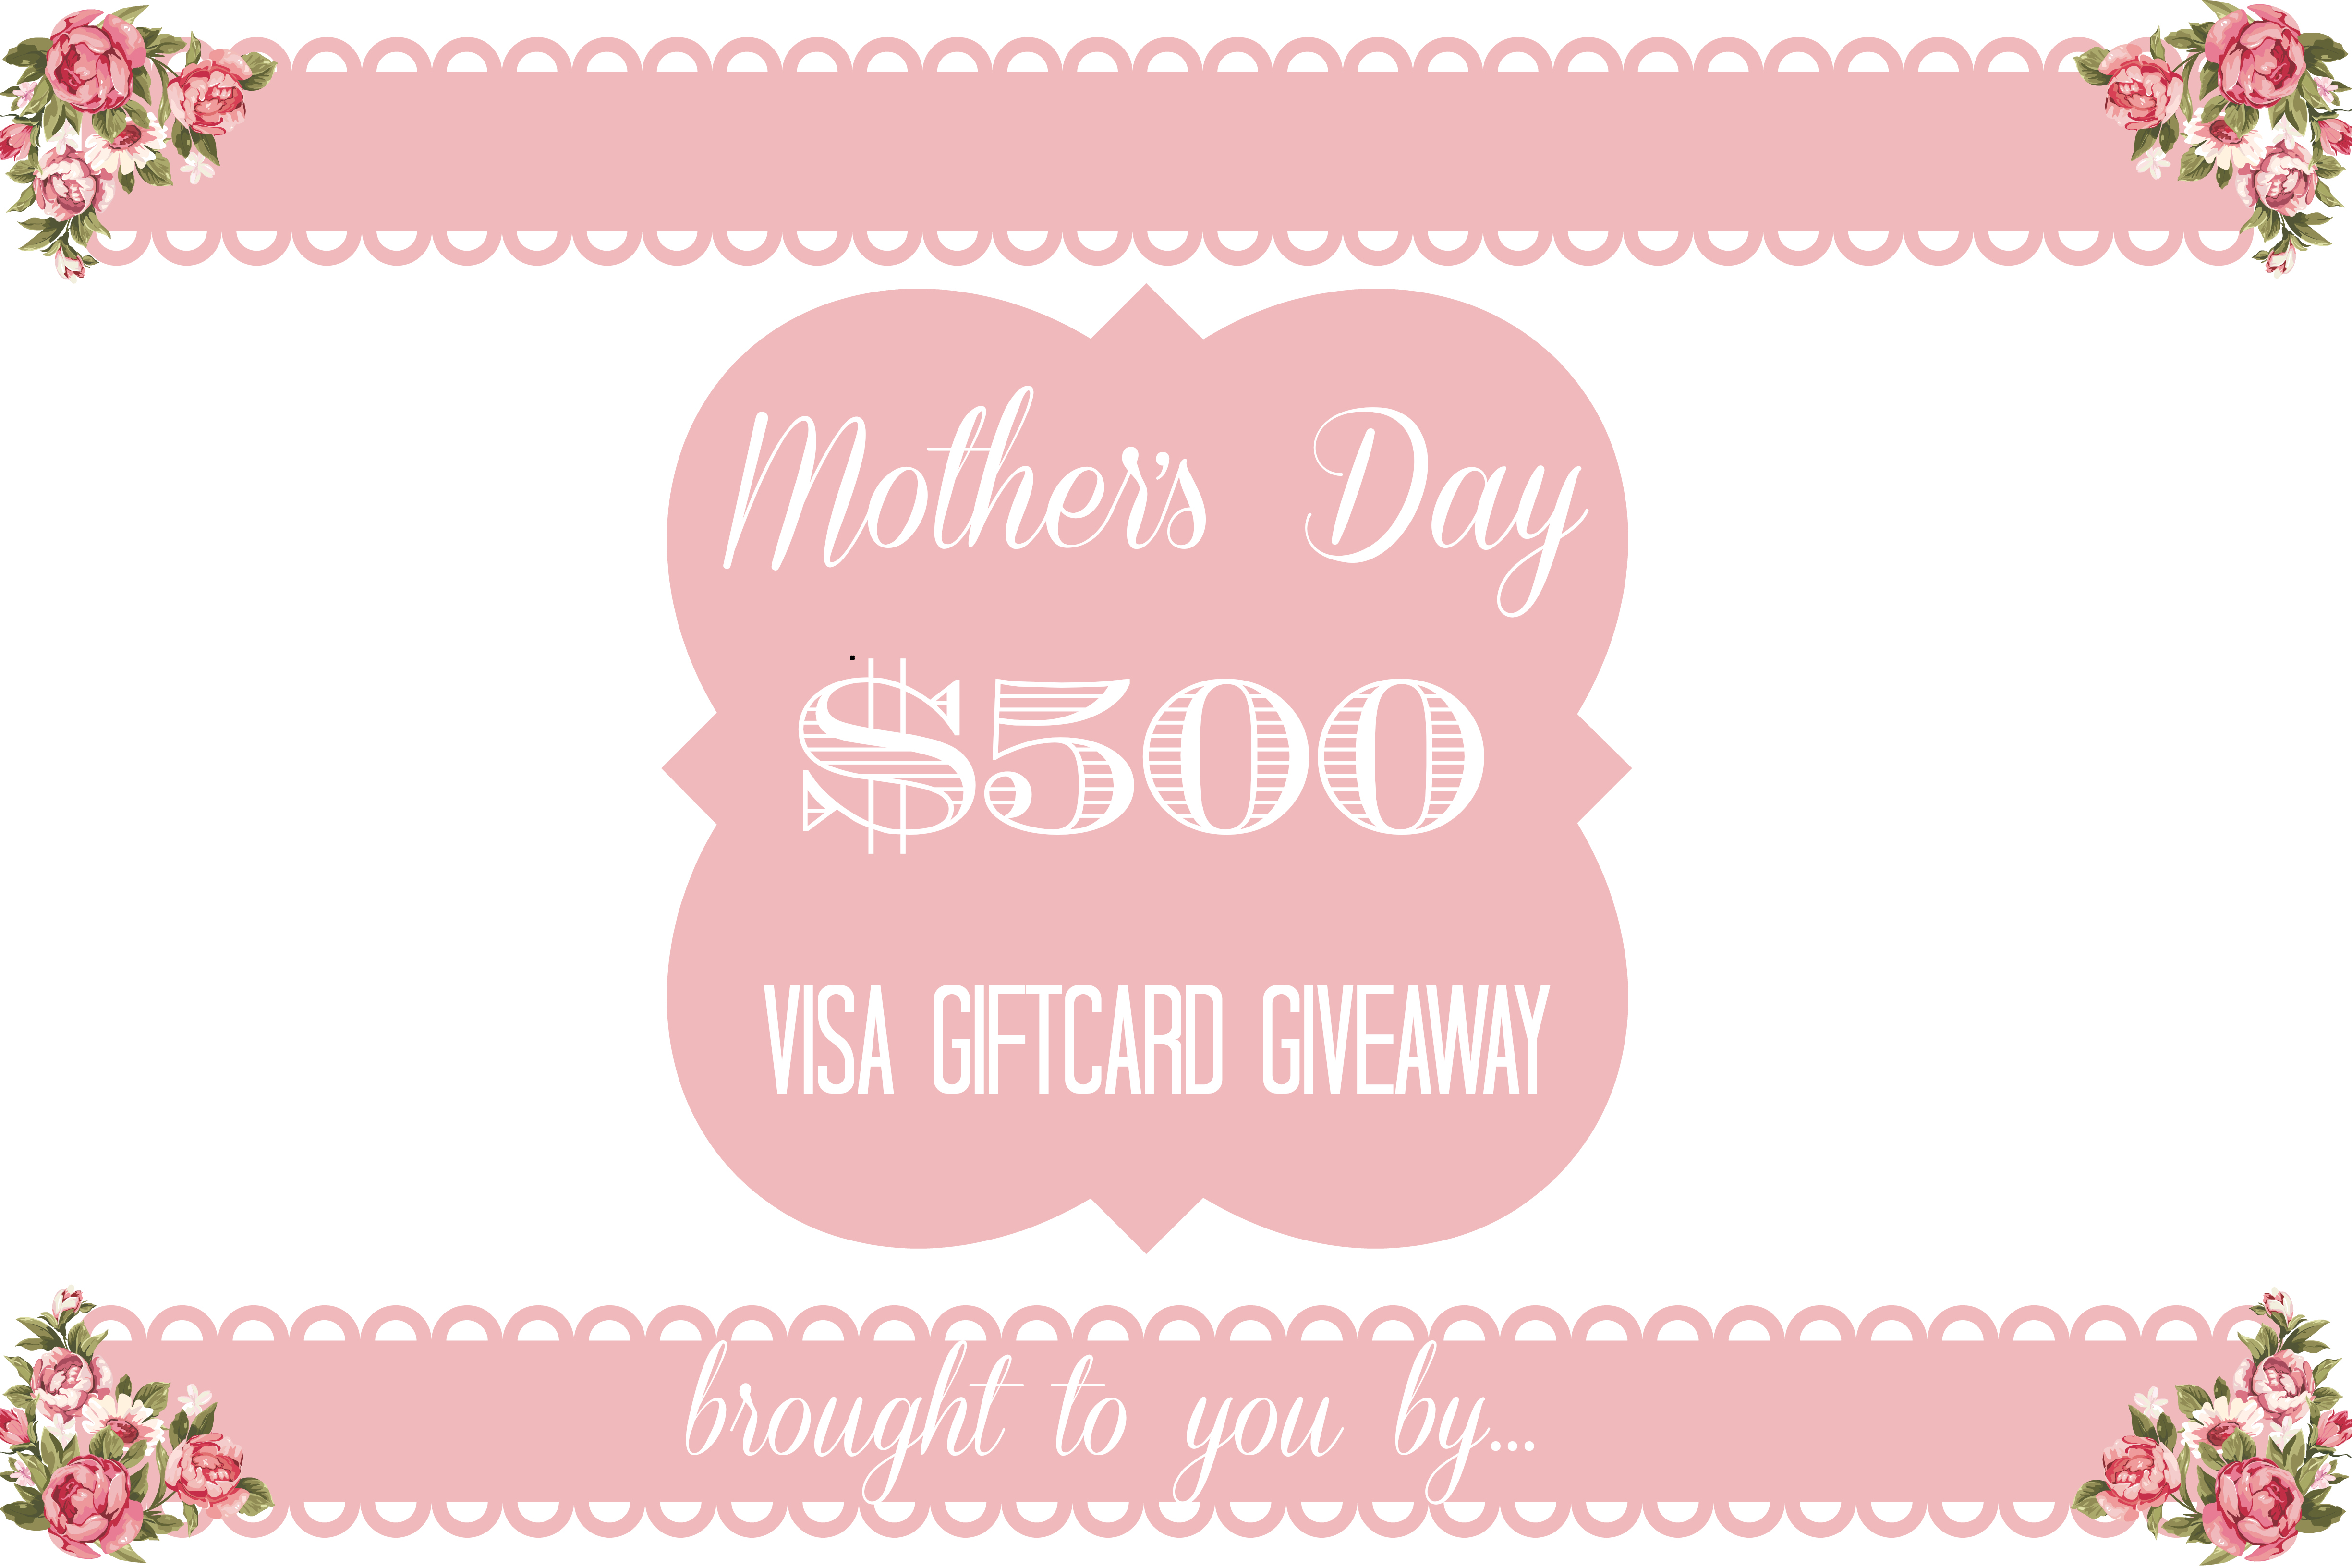 mom sweepstakes mother s day 500 gift card giveaway sandyalamode 8732